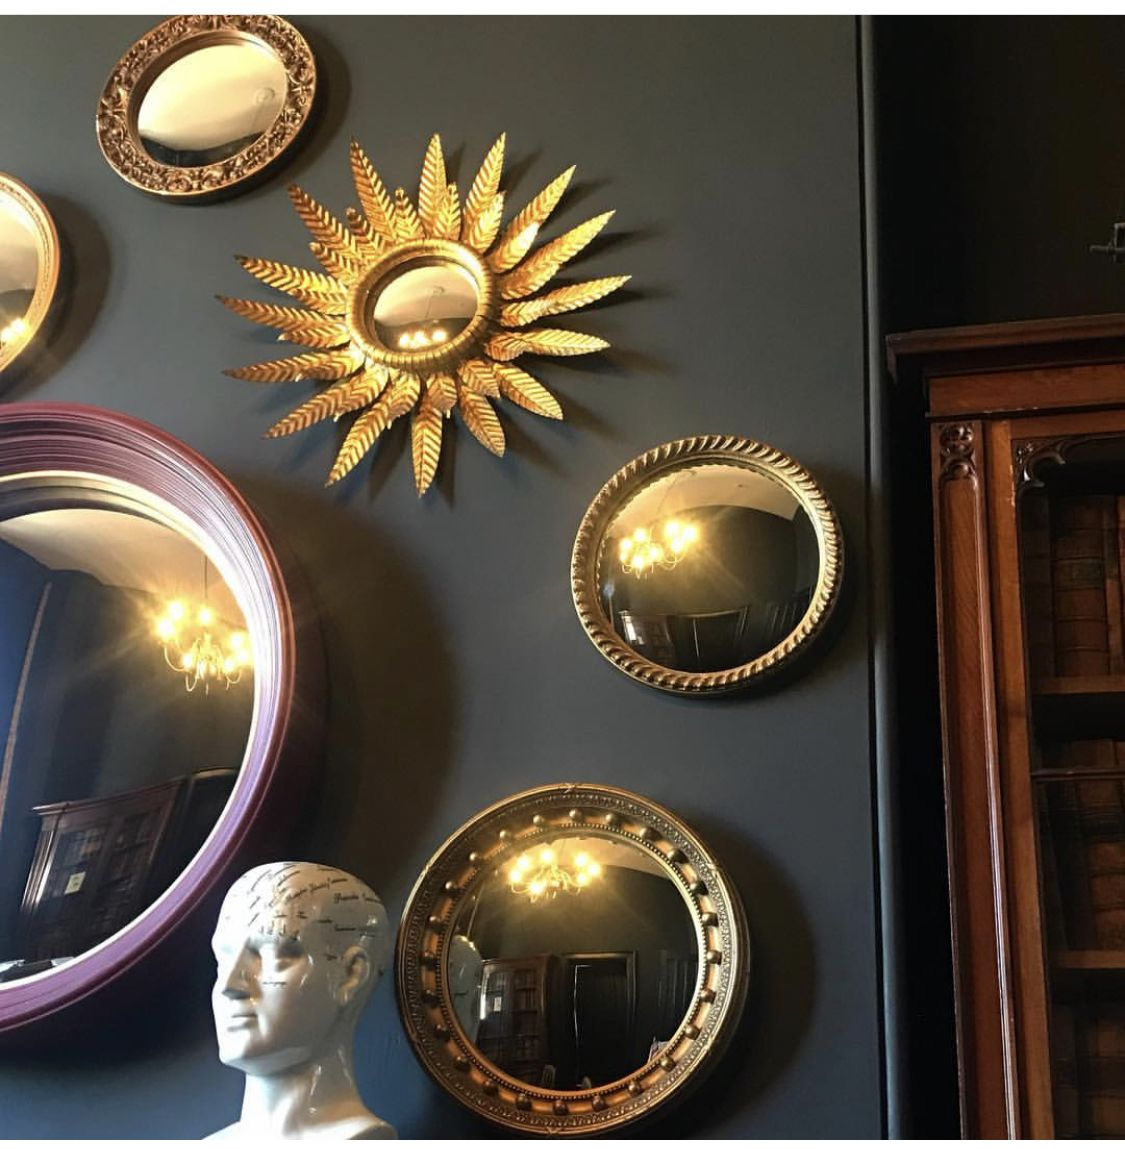 Pin by scott donnelly on HOME Wall lights, Decor, Home decor